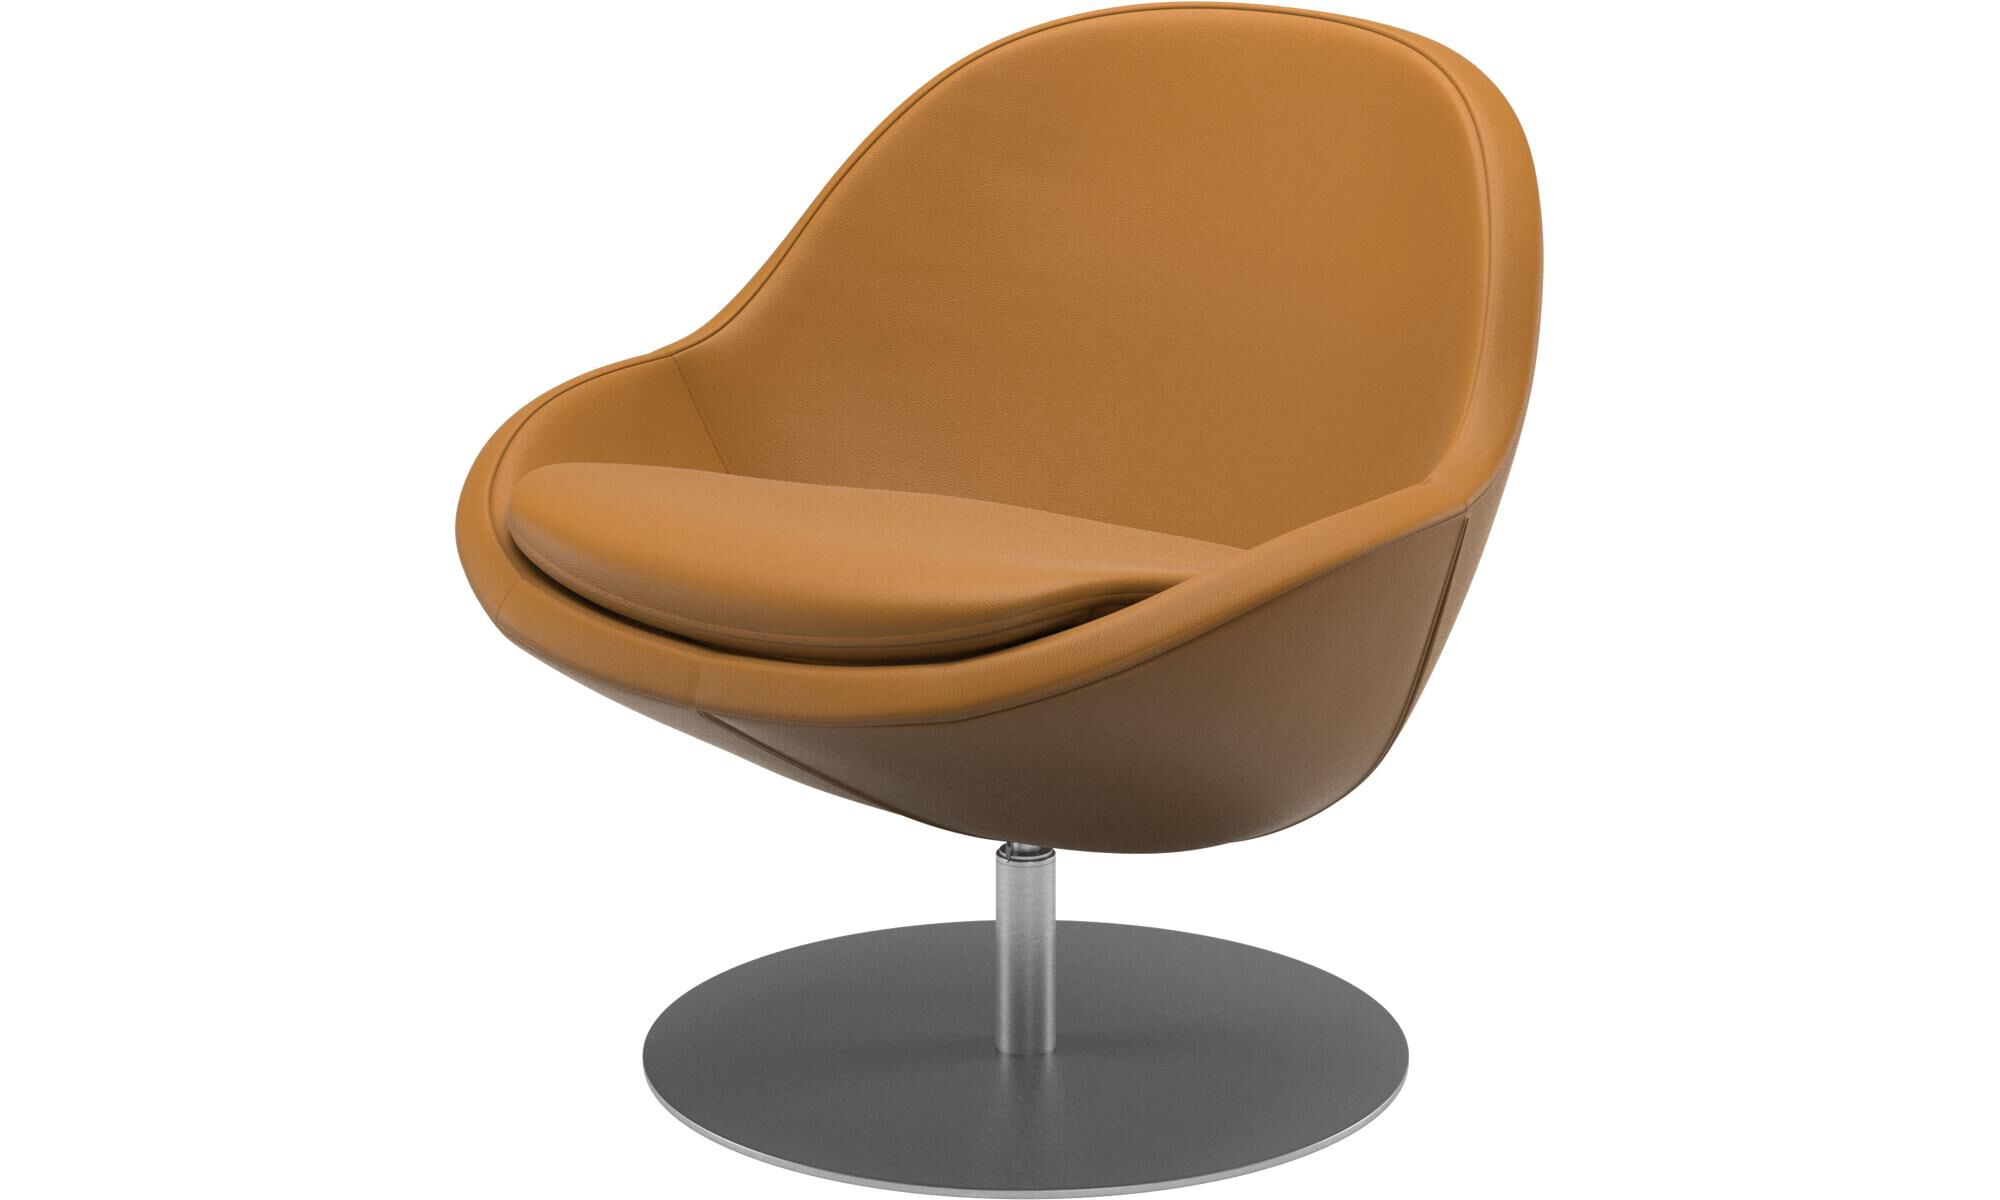 Armchairs   Veneto Chair With Swivel Function   Brown   Leather